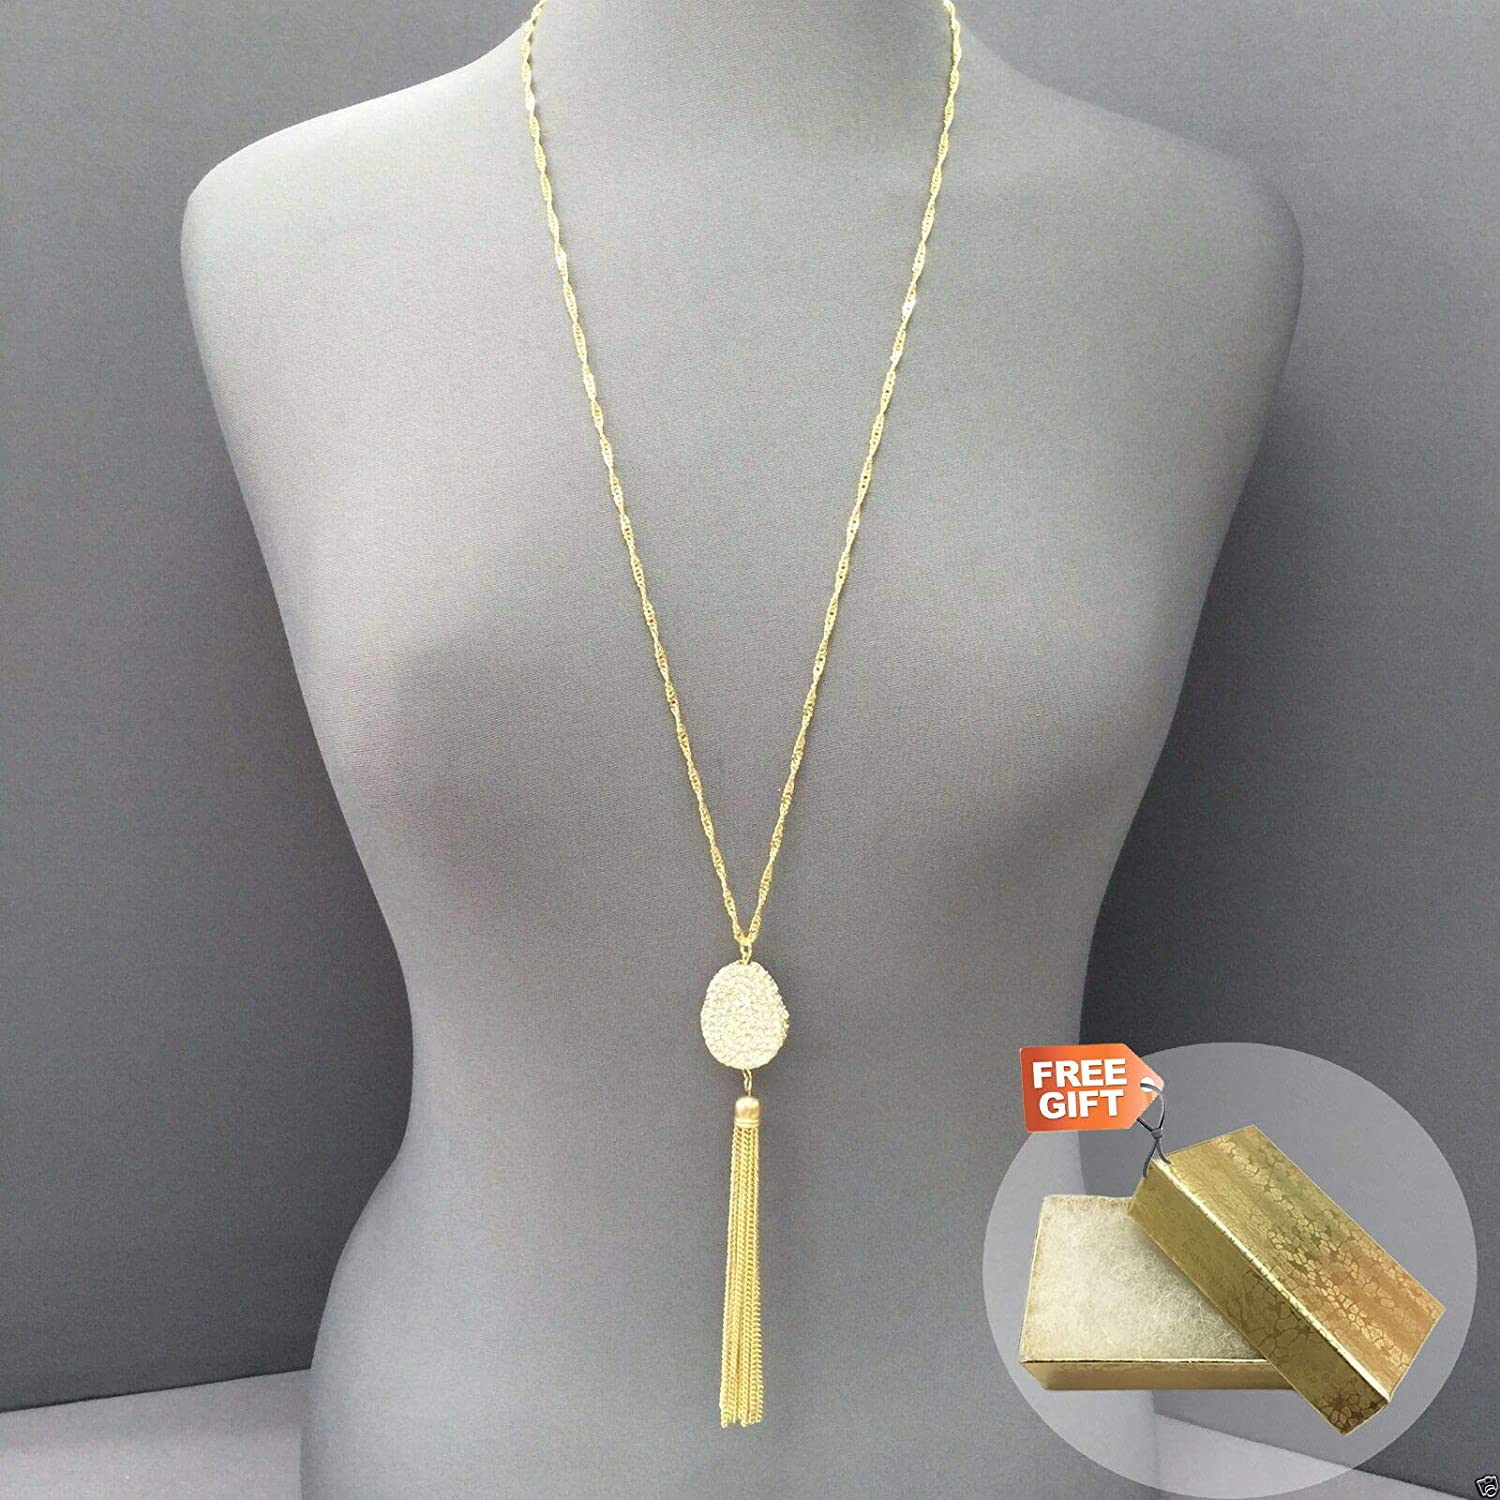 Gold Cotton Filled Gift Box for Free Gold Finish Chain Rhinestone Encrusted Tassel Pendant Necklace